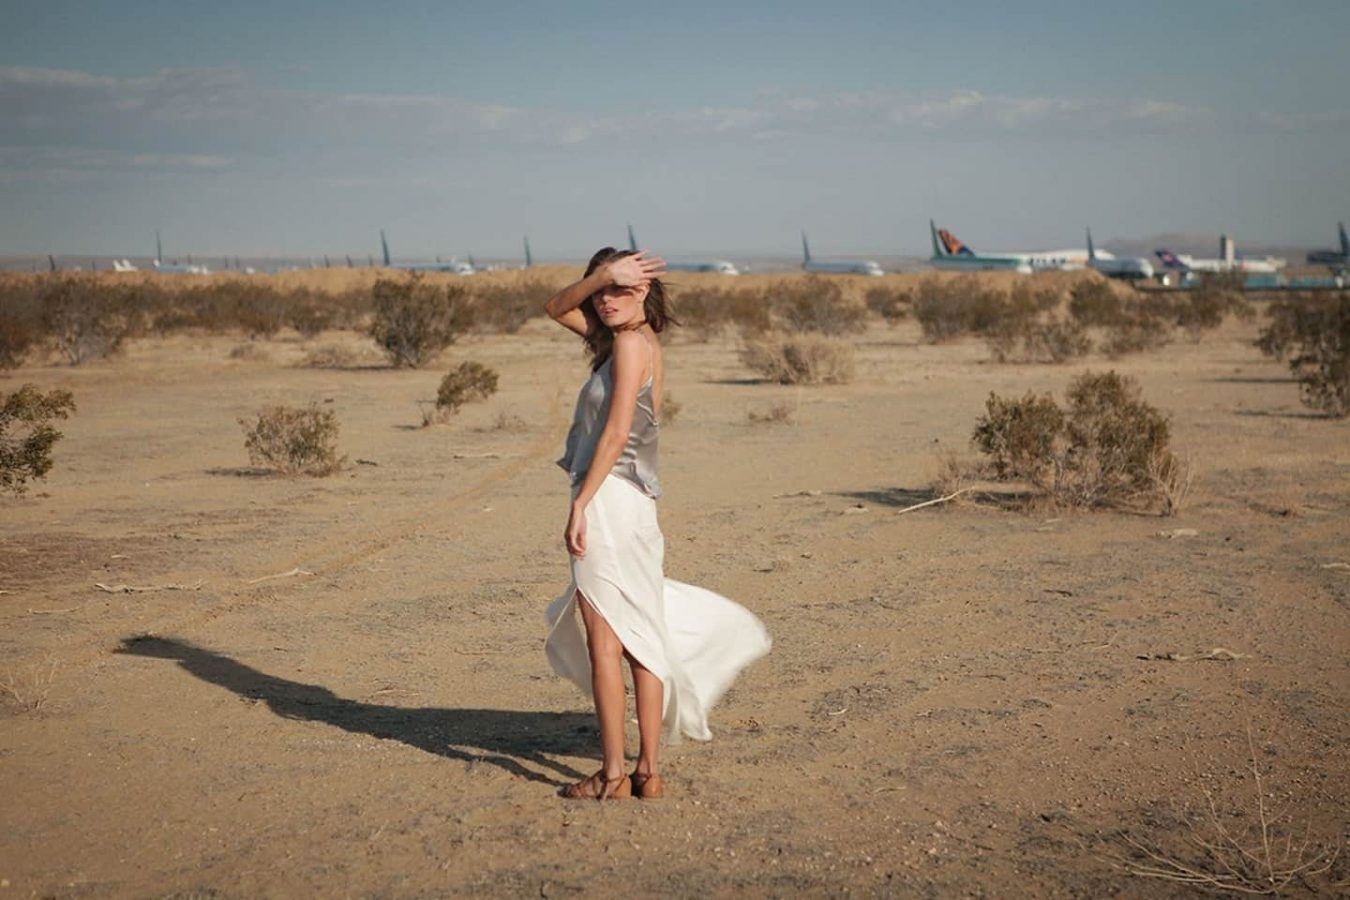 PREVIEW: Festival style with Kate Bosworth for Topshop